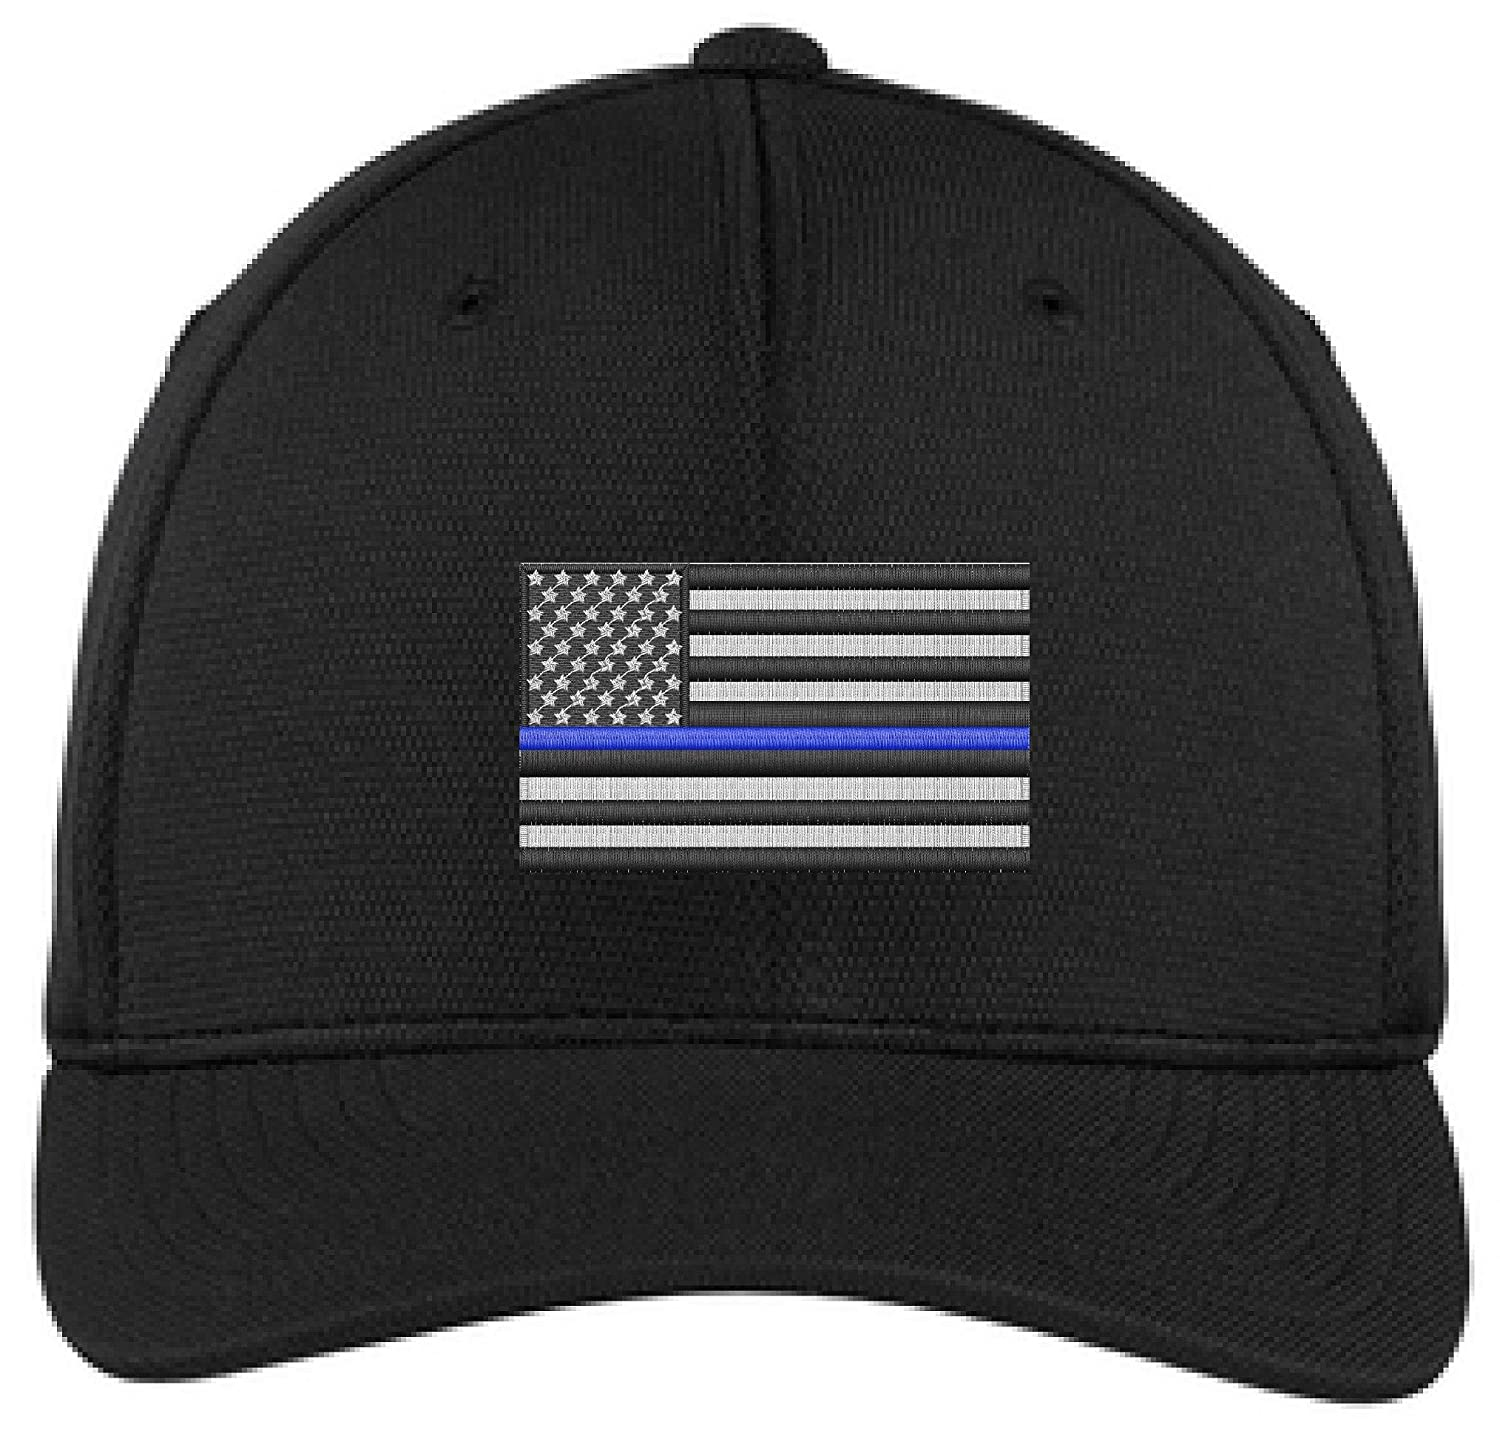 362aa7655b4fb6 Embroidered Thin Blue Line Subdued American Flag Law Enforcement Black  Flexfit Hat at Amazon Men's Clothing store: